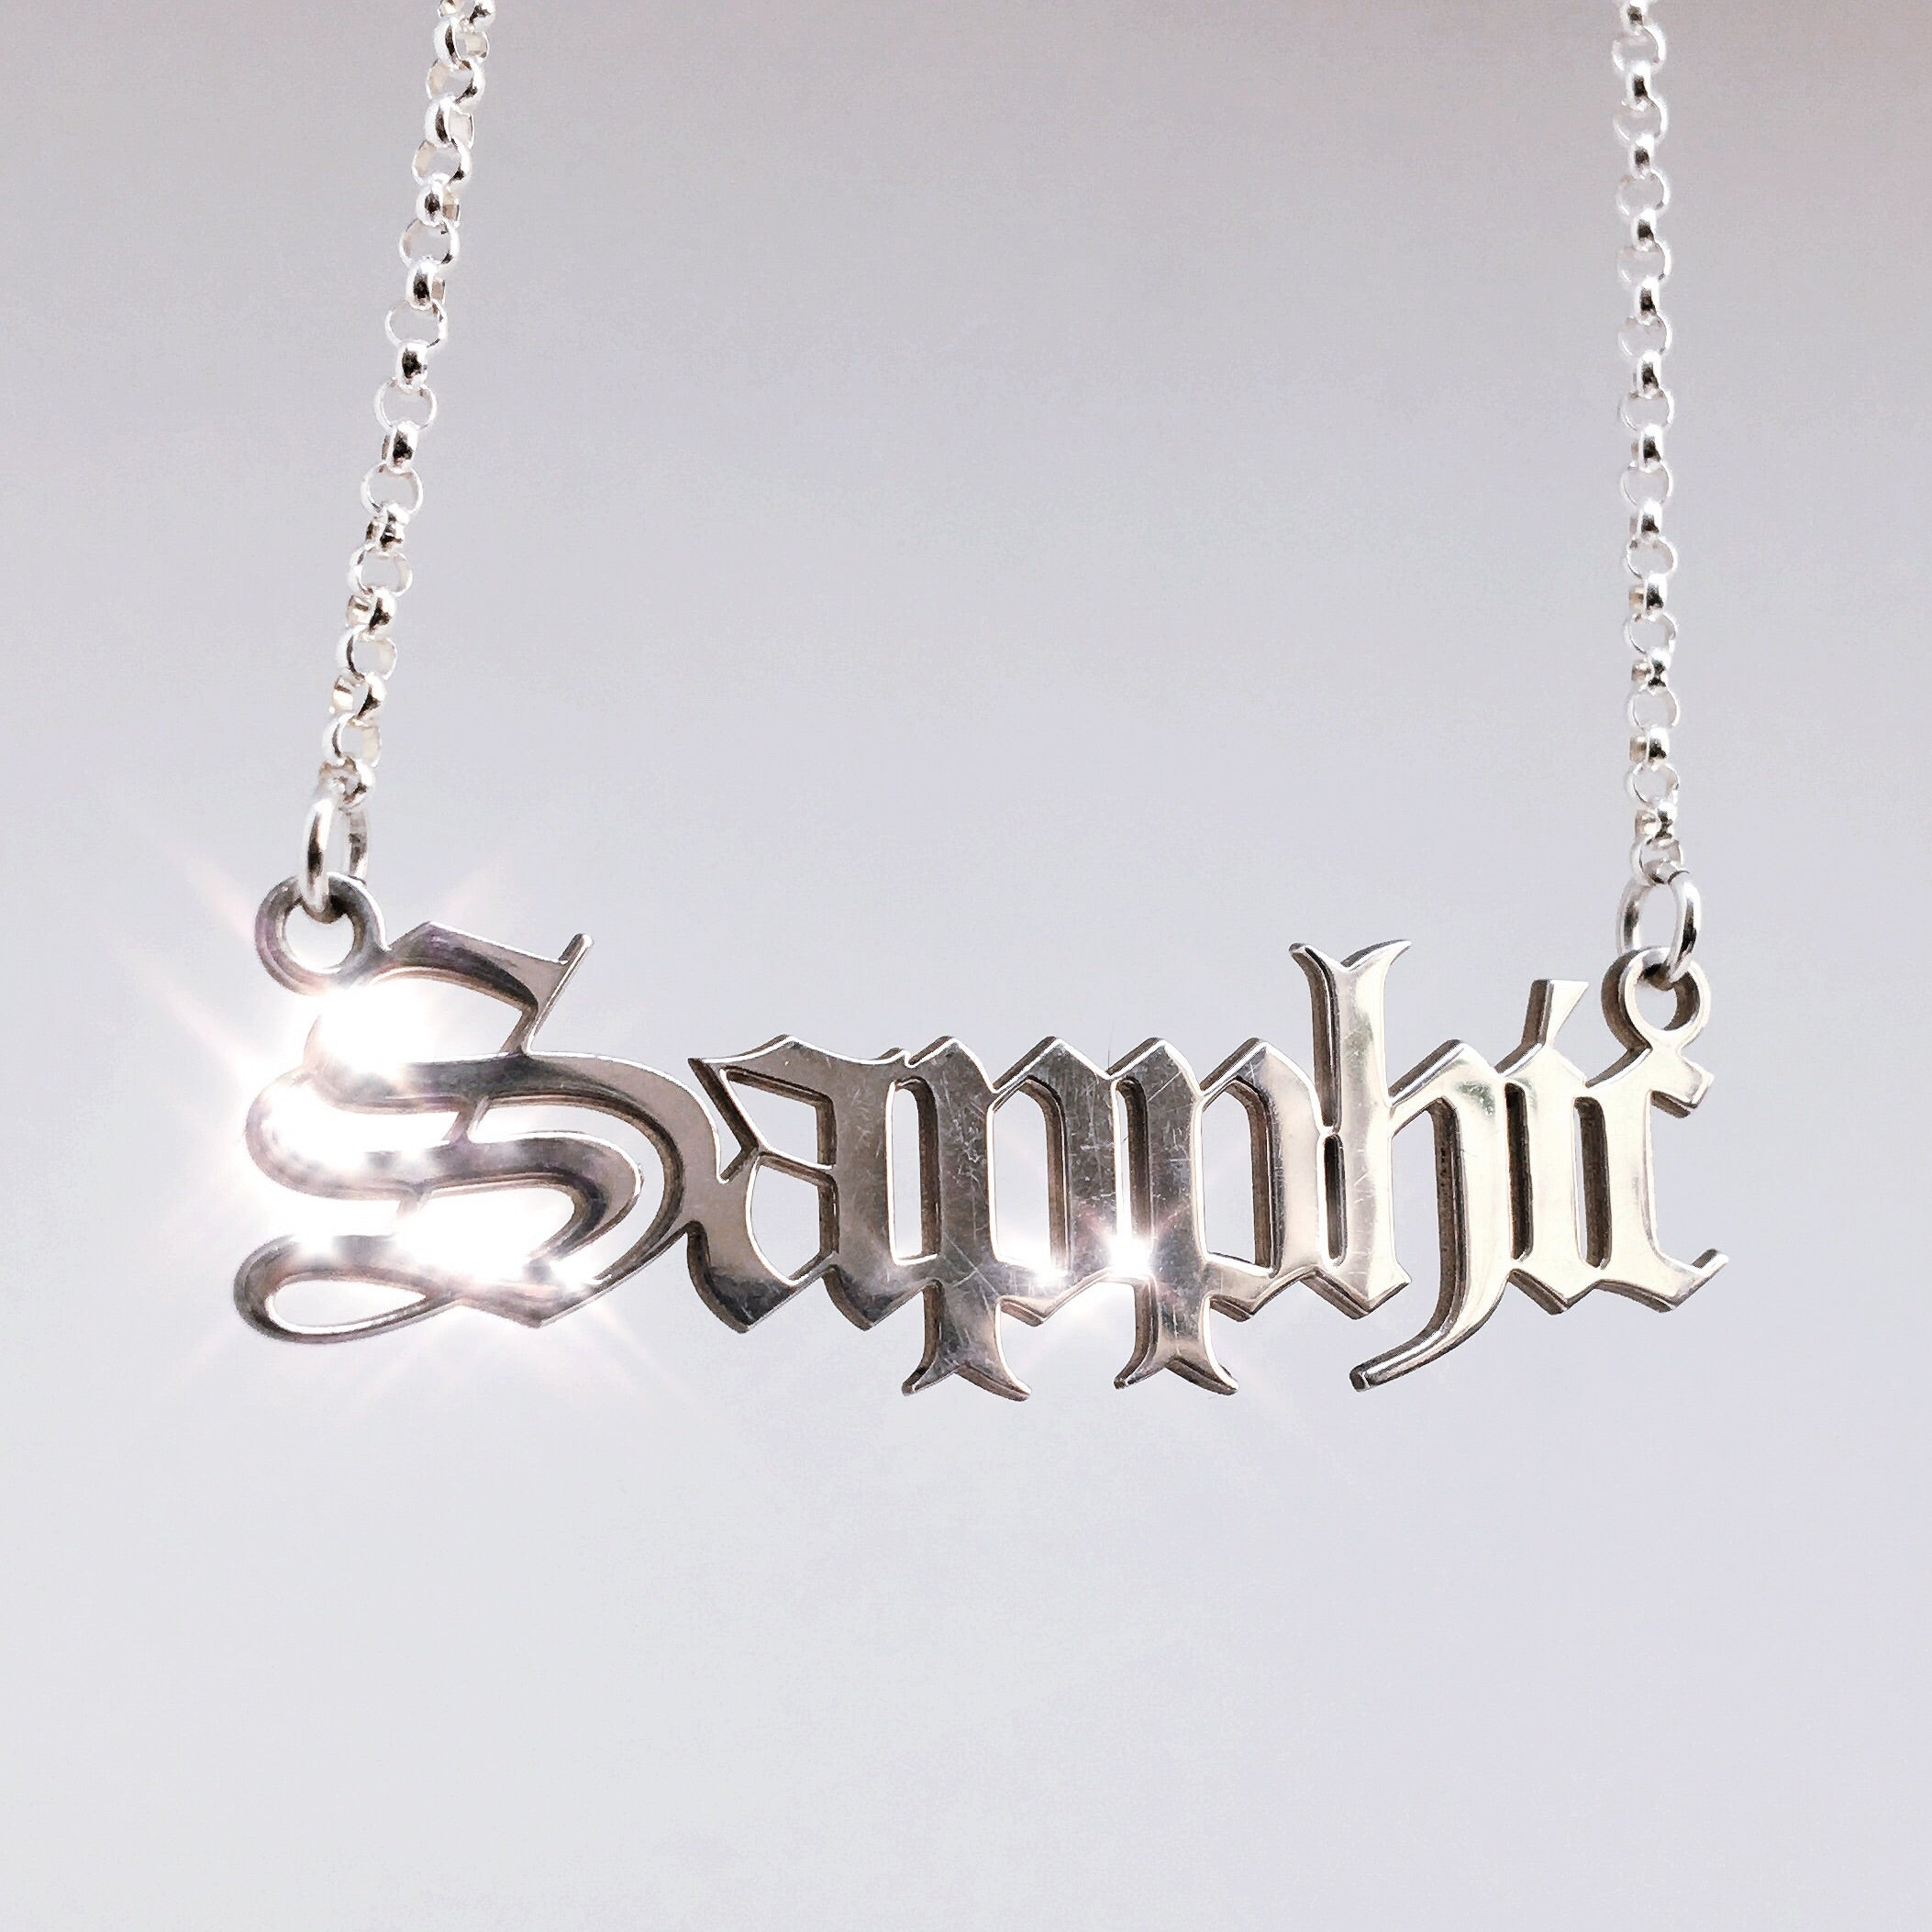 Sapphic Necklace *READY TO SHIP*